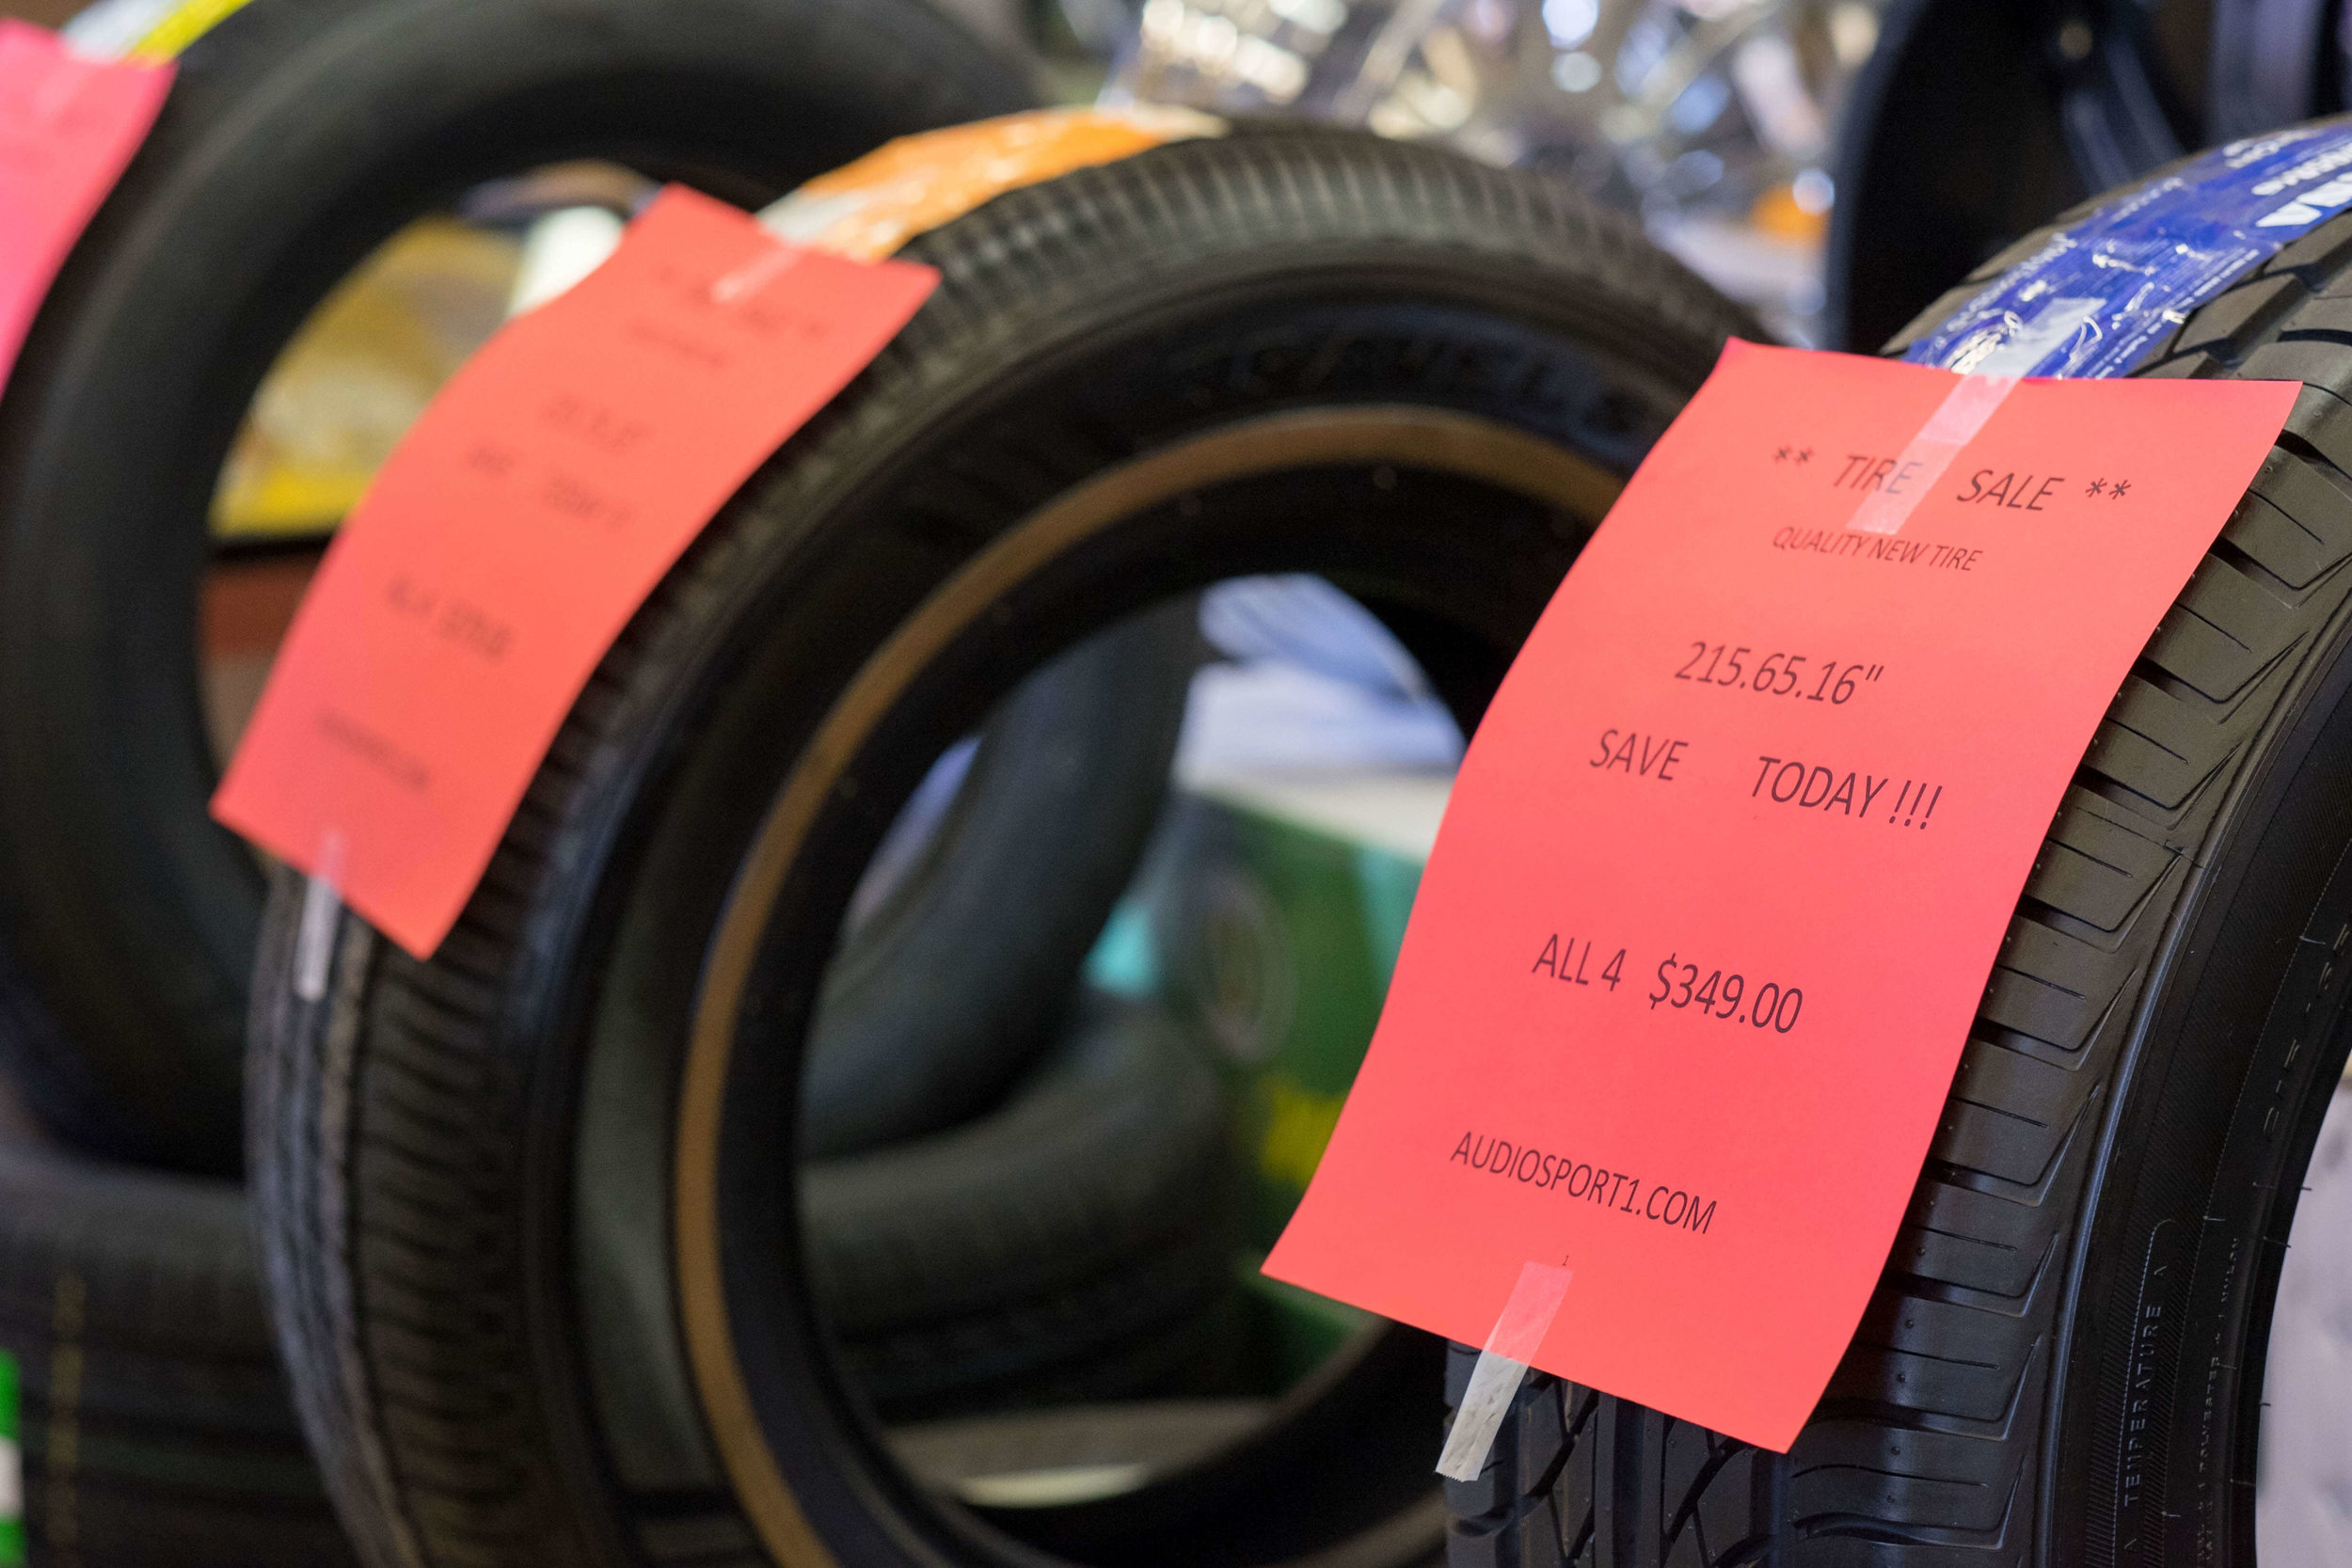 Tire sale at Audiosport Escondido